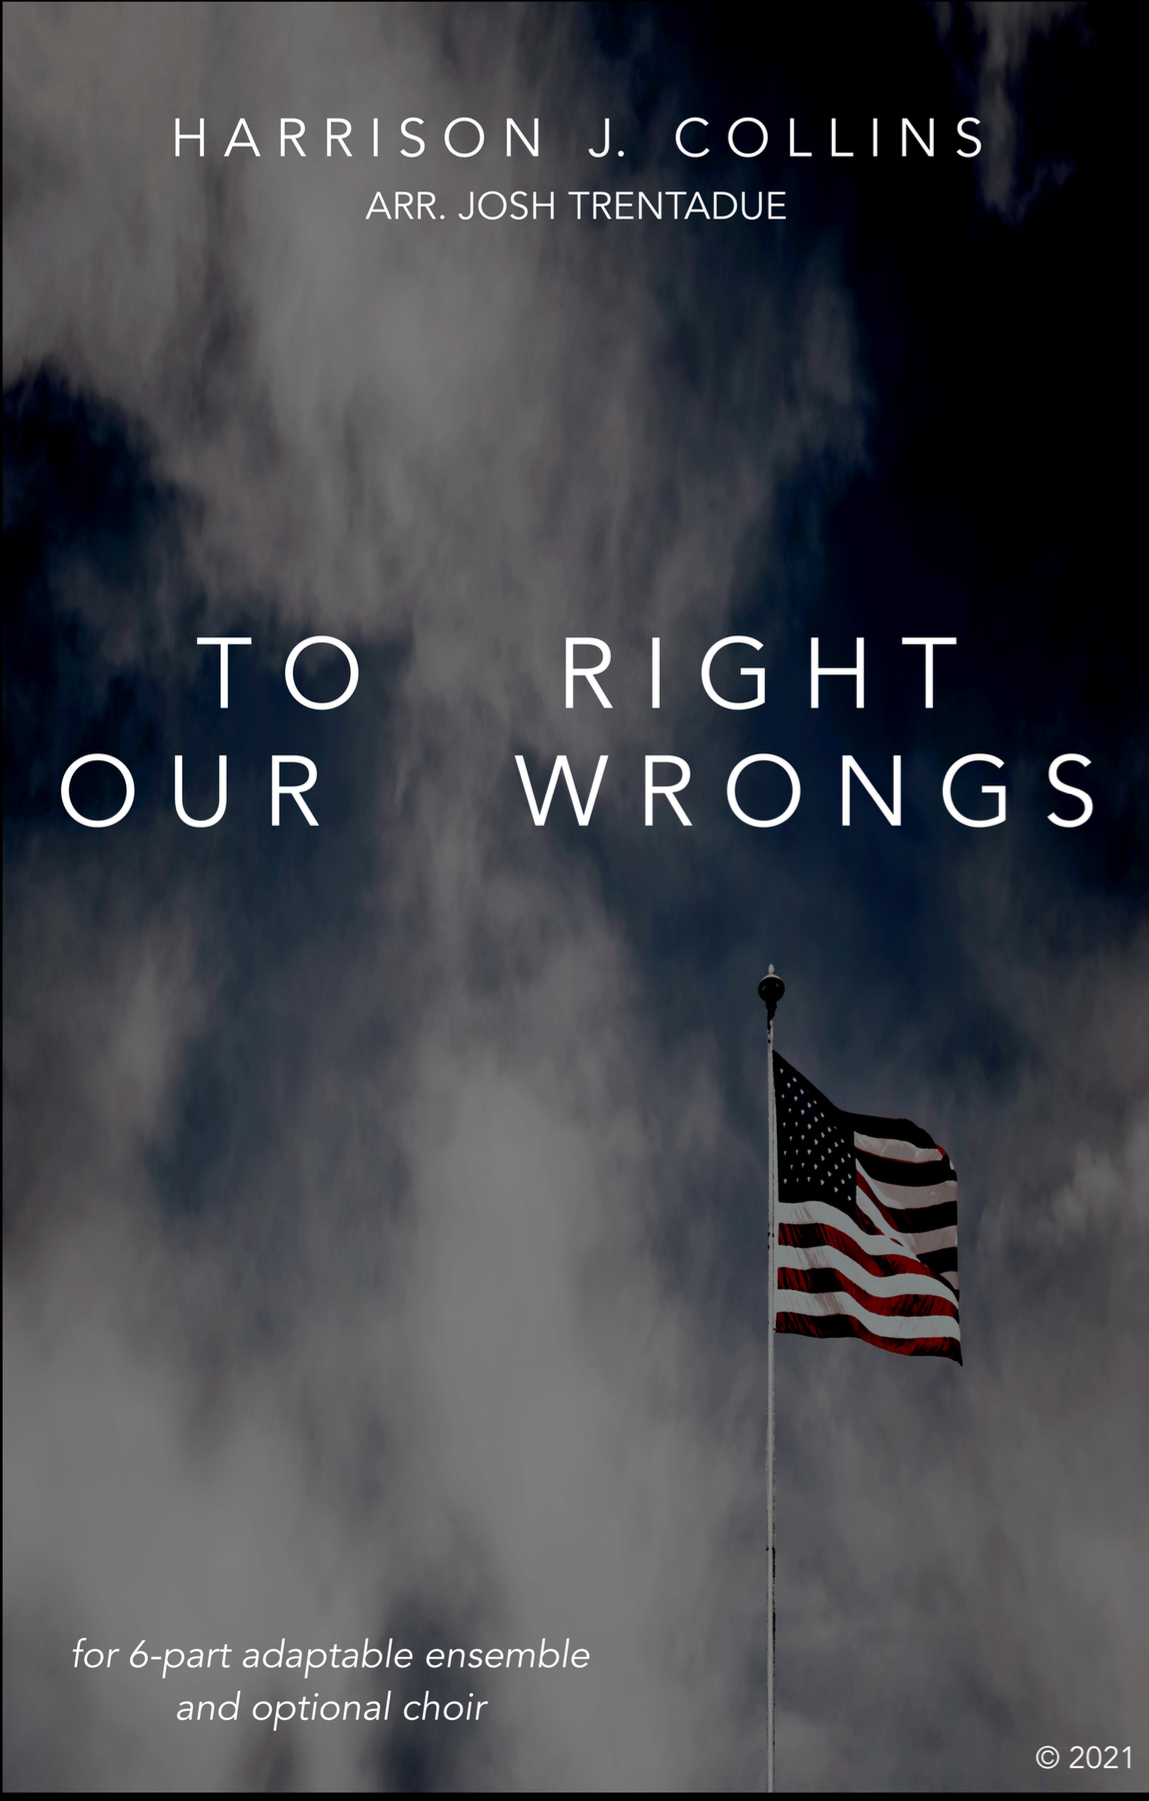 To Right Our Wrongs (Flex Version) by Harrison Collins, arr. Trentadue